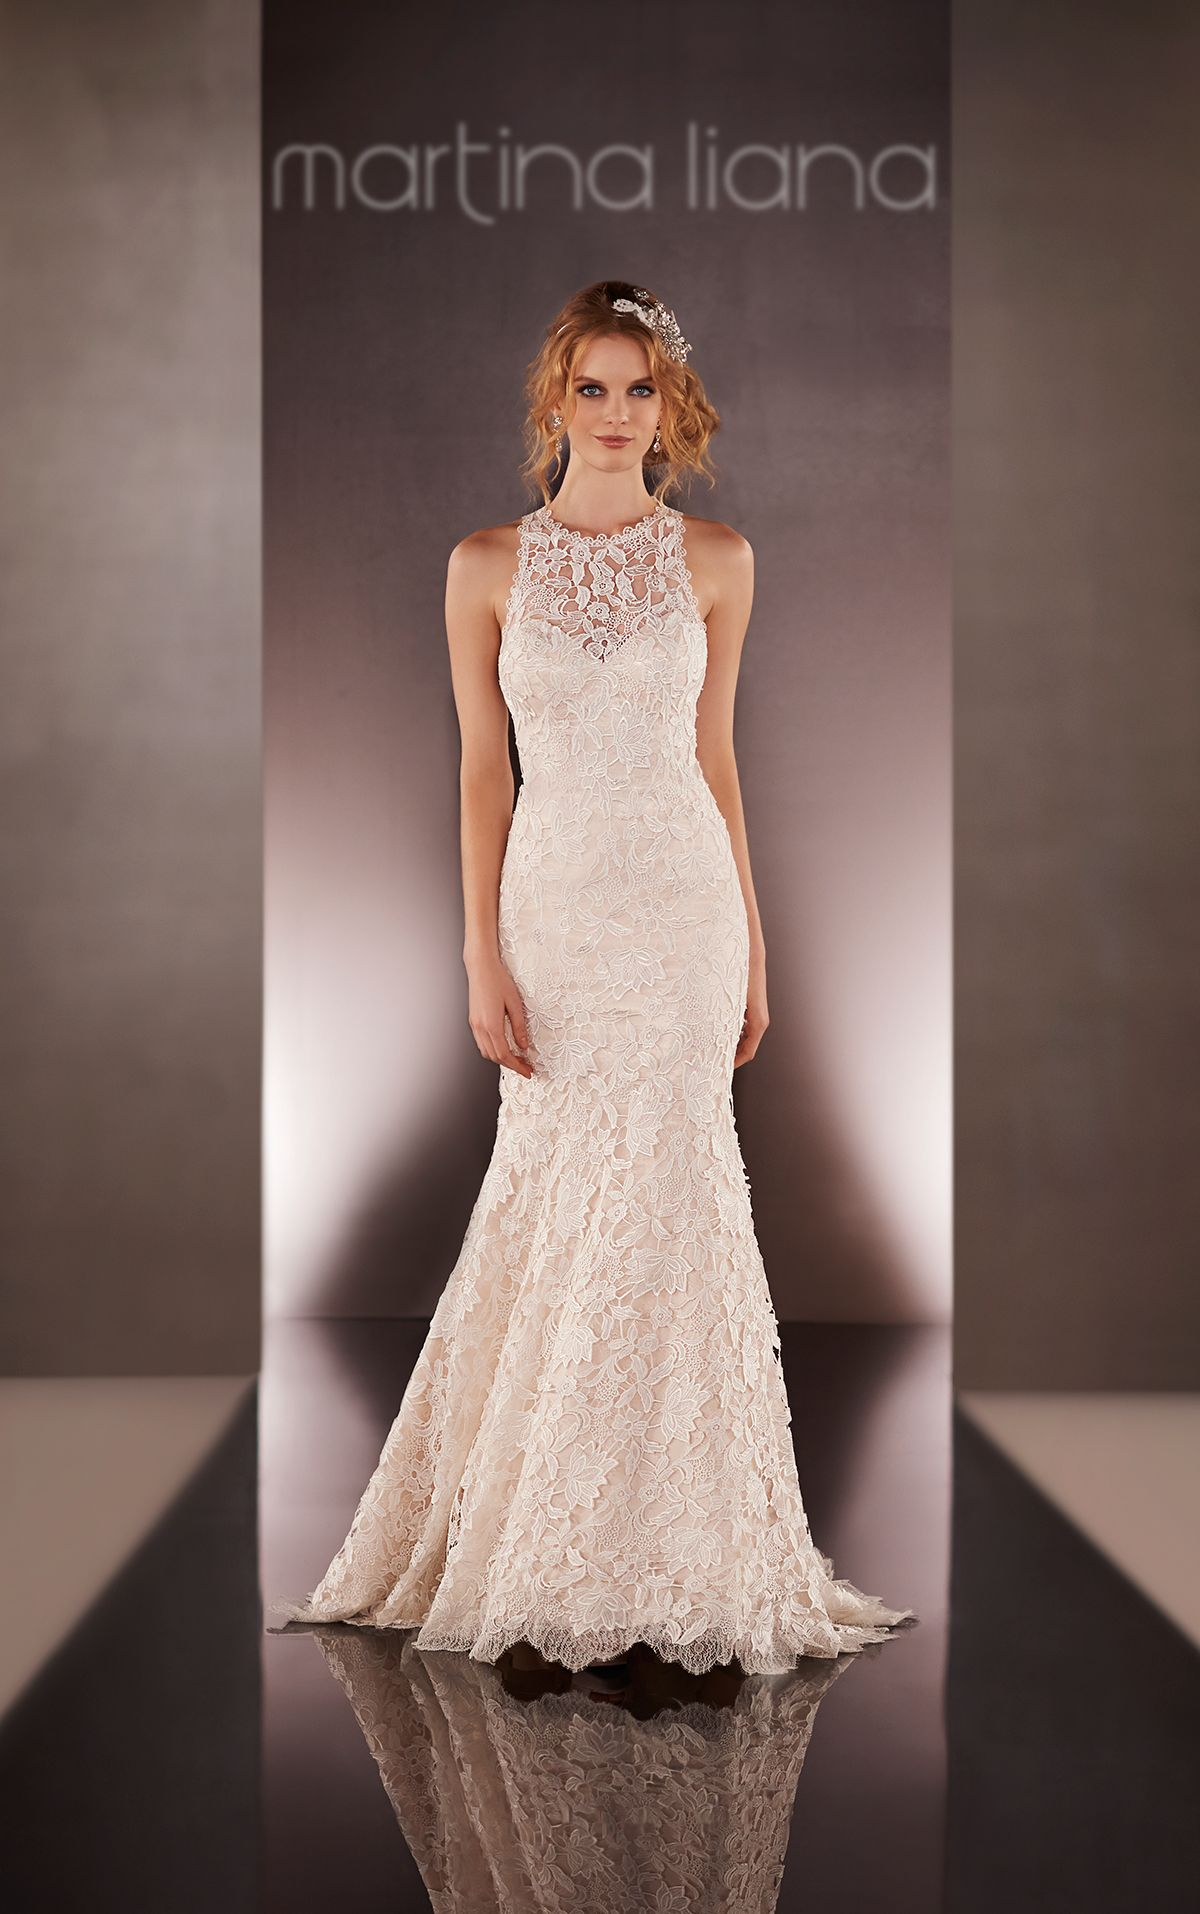 Vintage High-Neck Lace Wedding Dress | Illusions, Neckline and ...